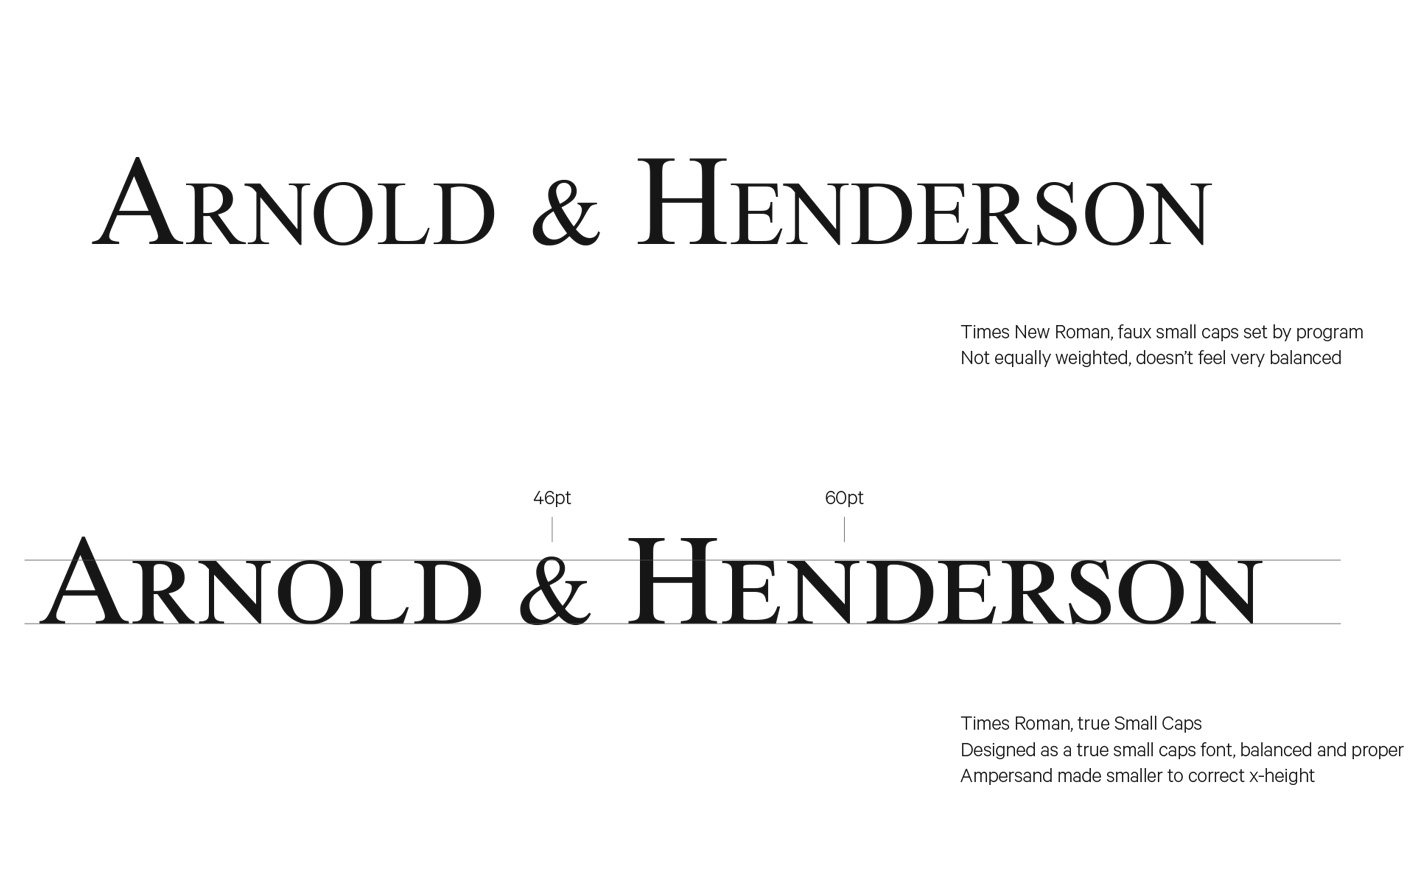 HED for Arnold and Henderson